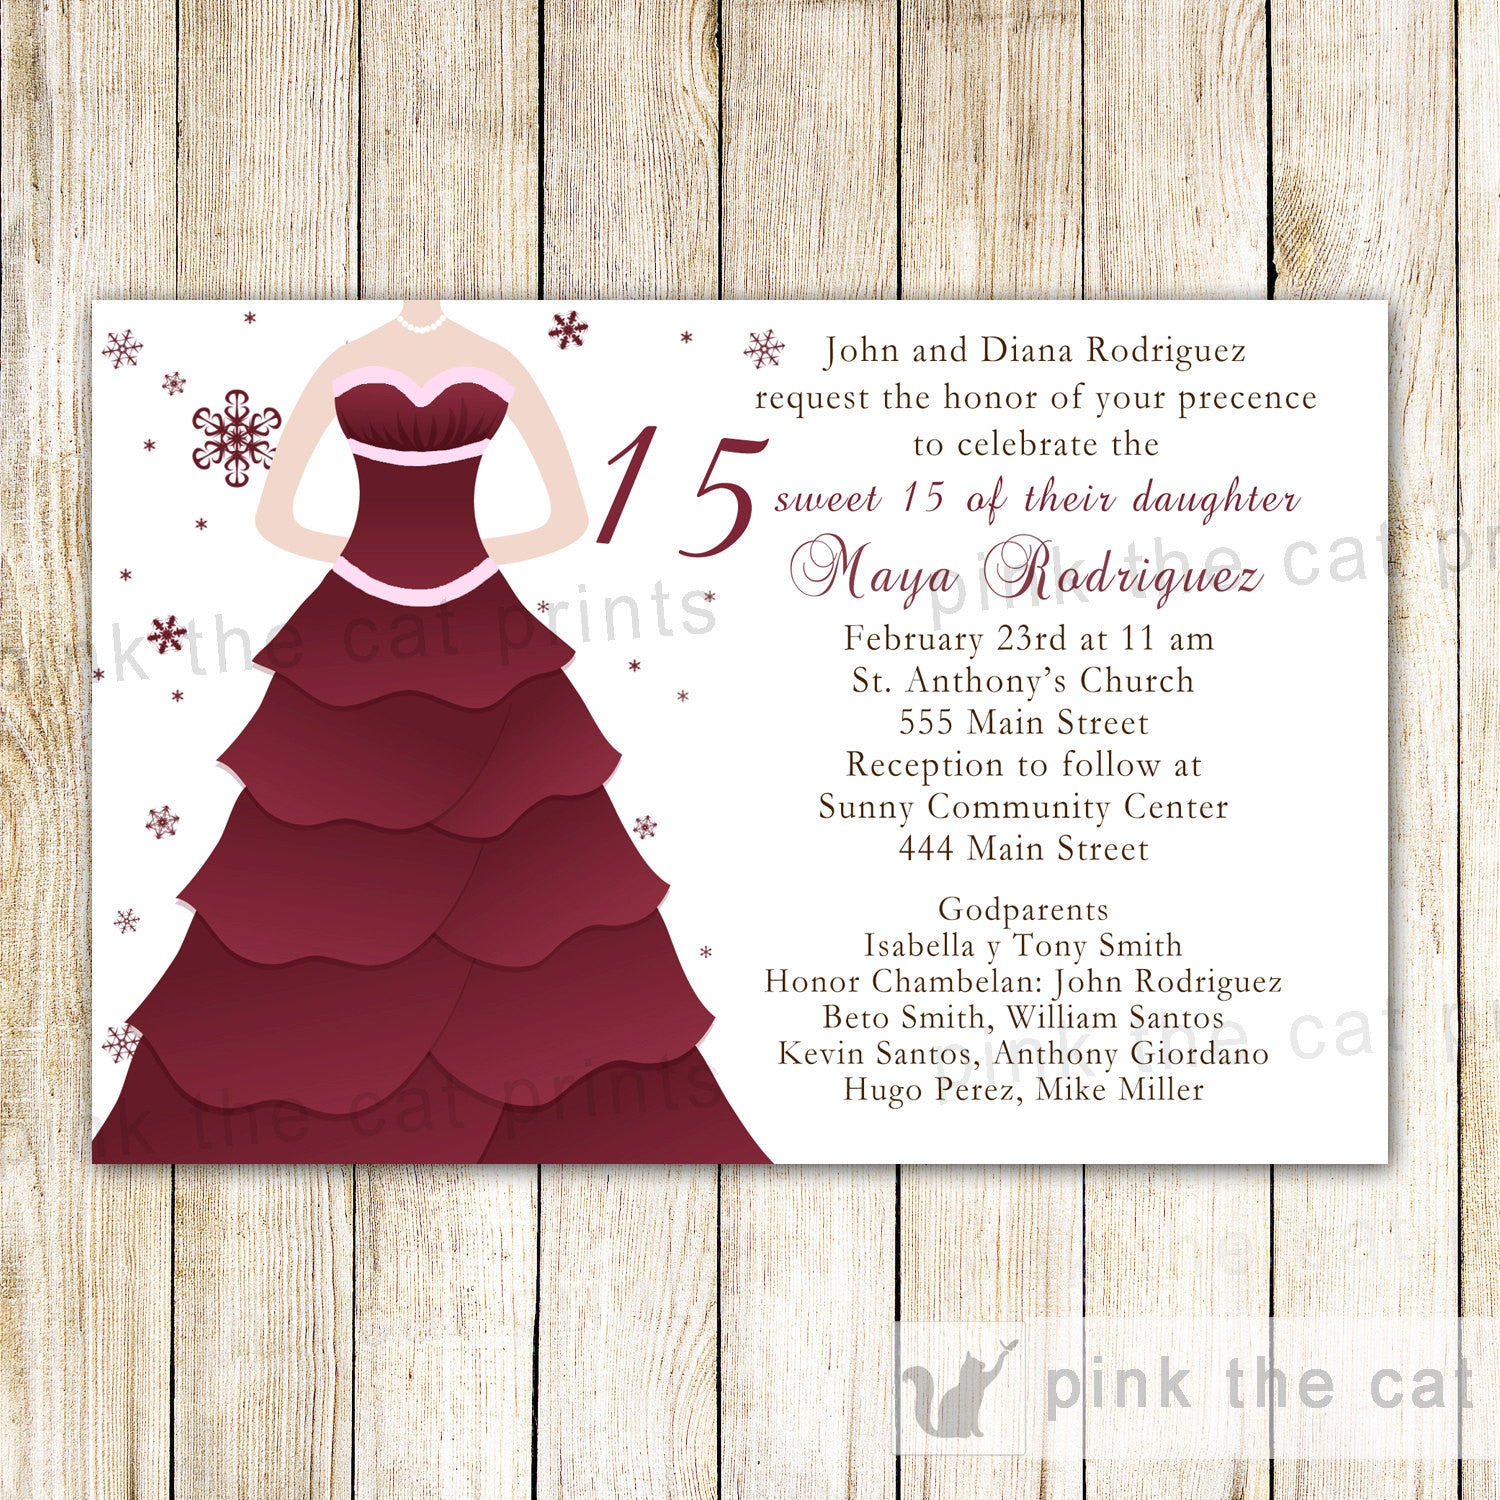 Winter Invitations Quinceanera Sweet 16 Burgundy Dress Pink The Cat